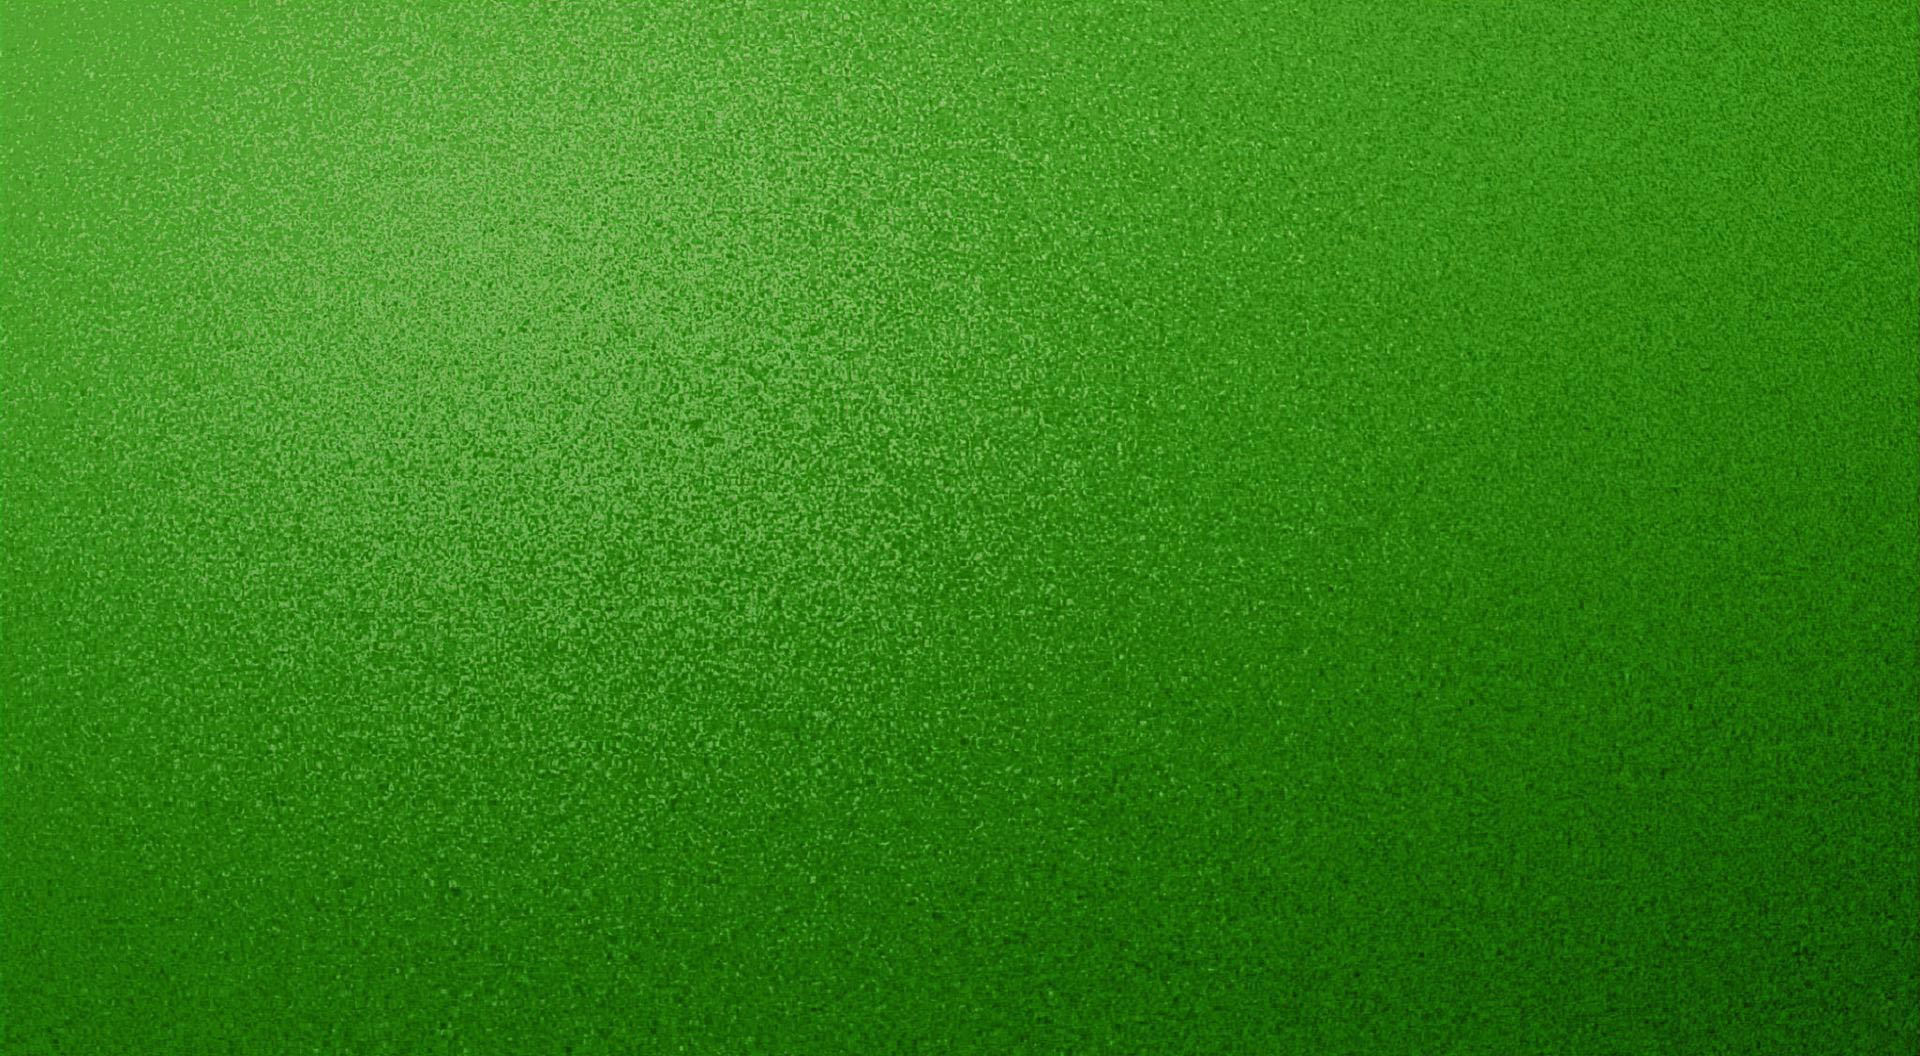 green textured background desktop wallpaper